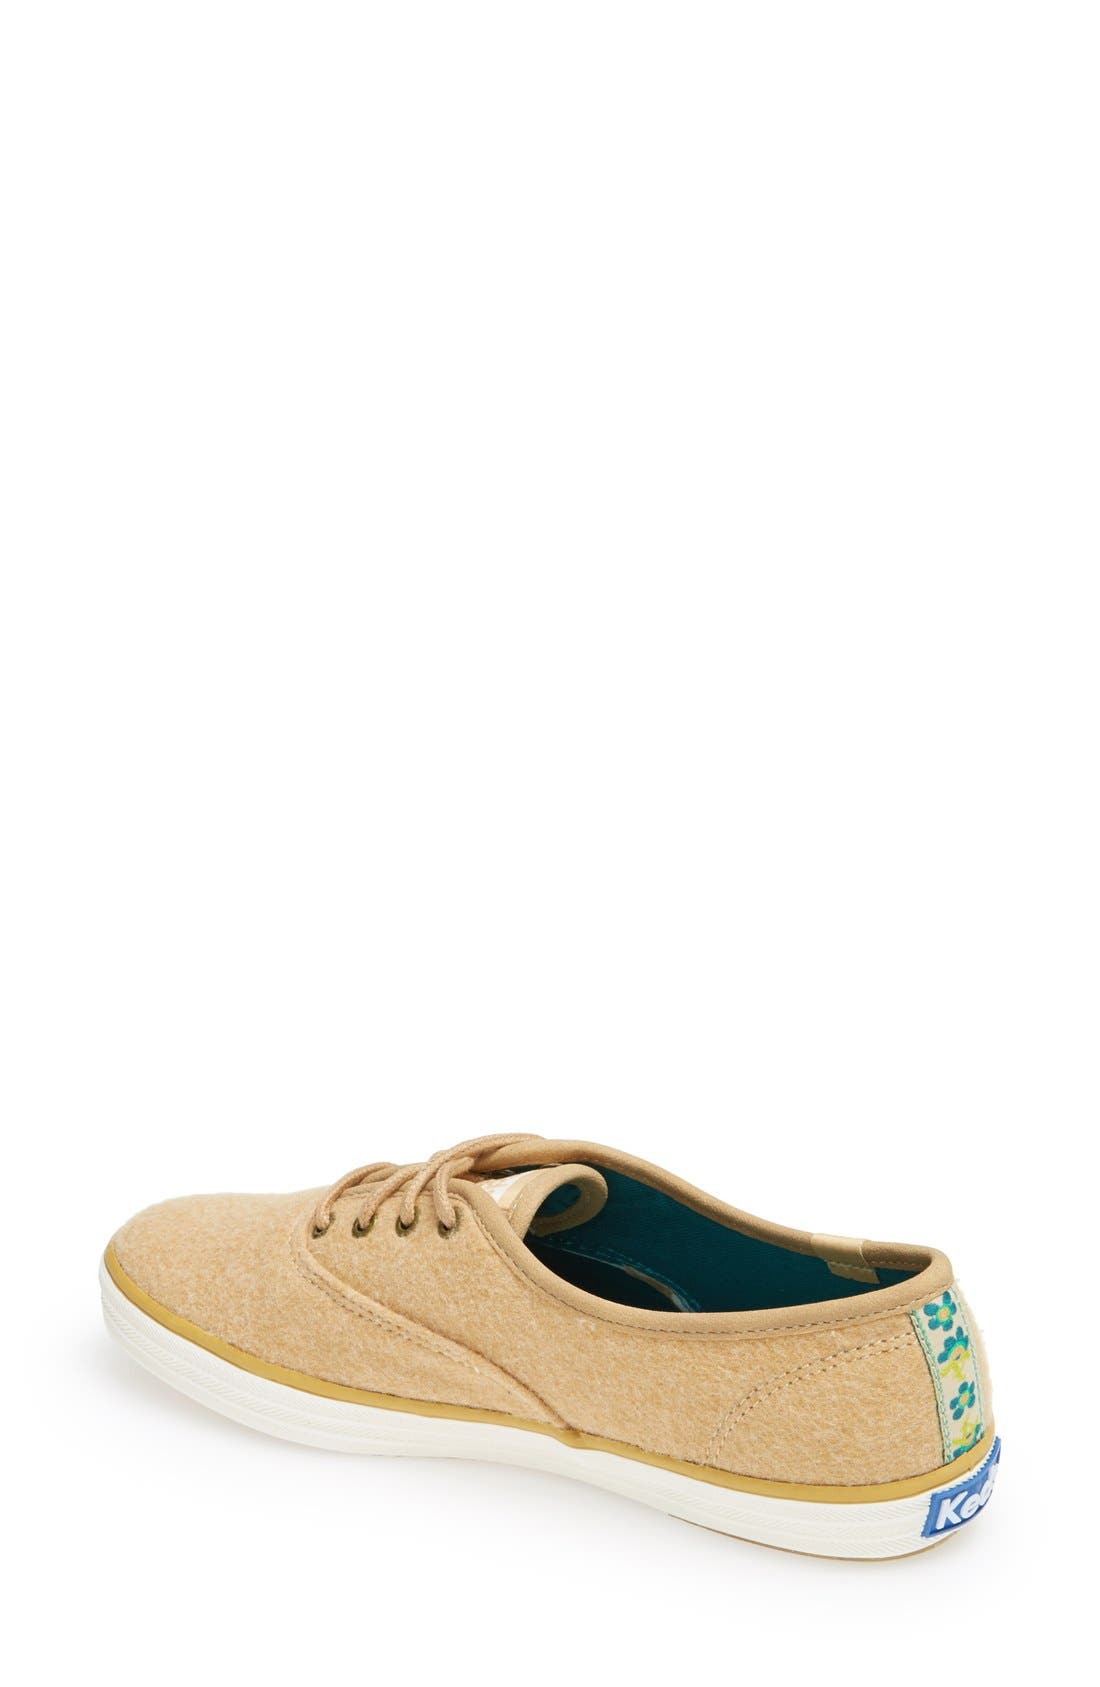 Alternate Image 2  - Keds® 'Champion Felt' Sneaker (Women)